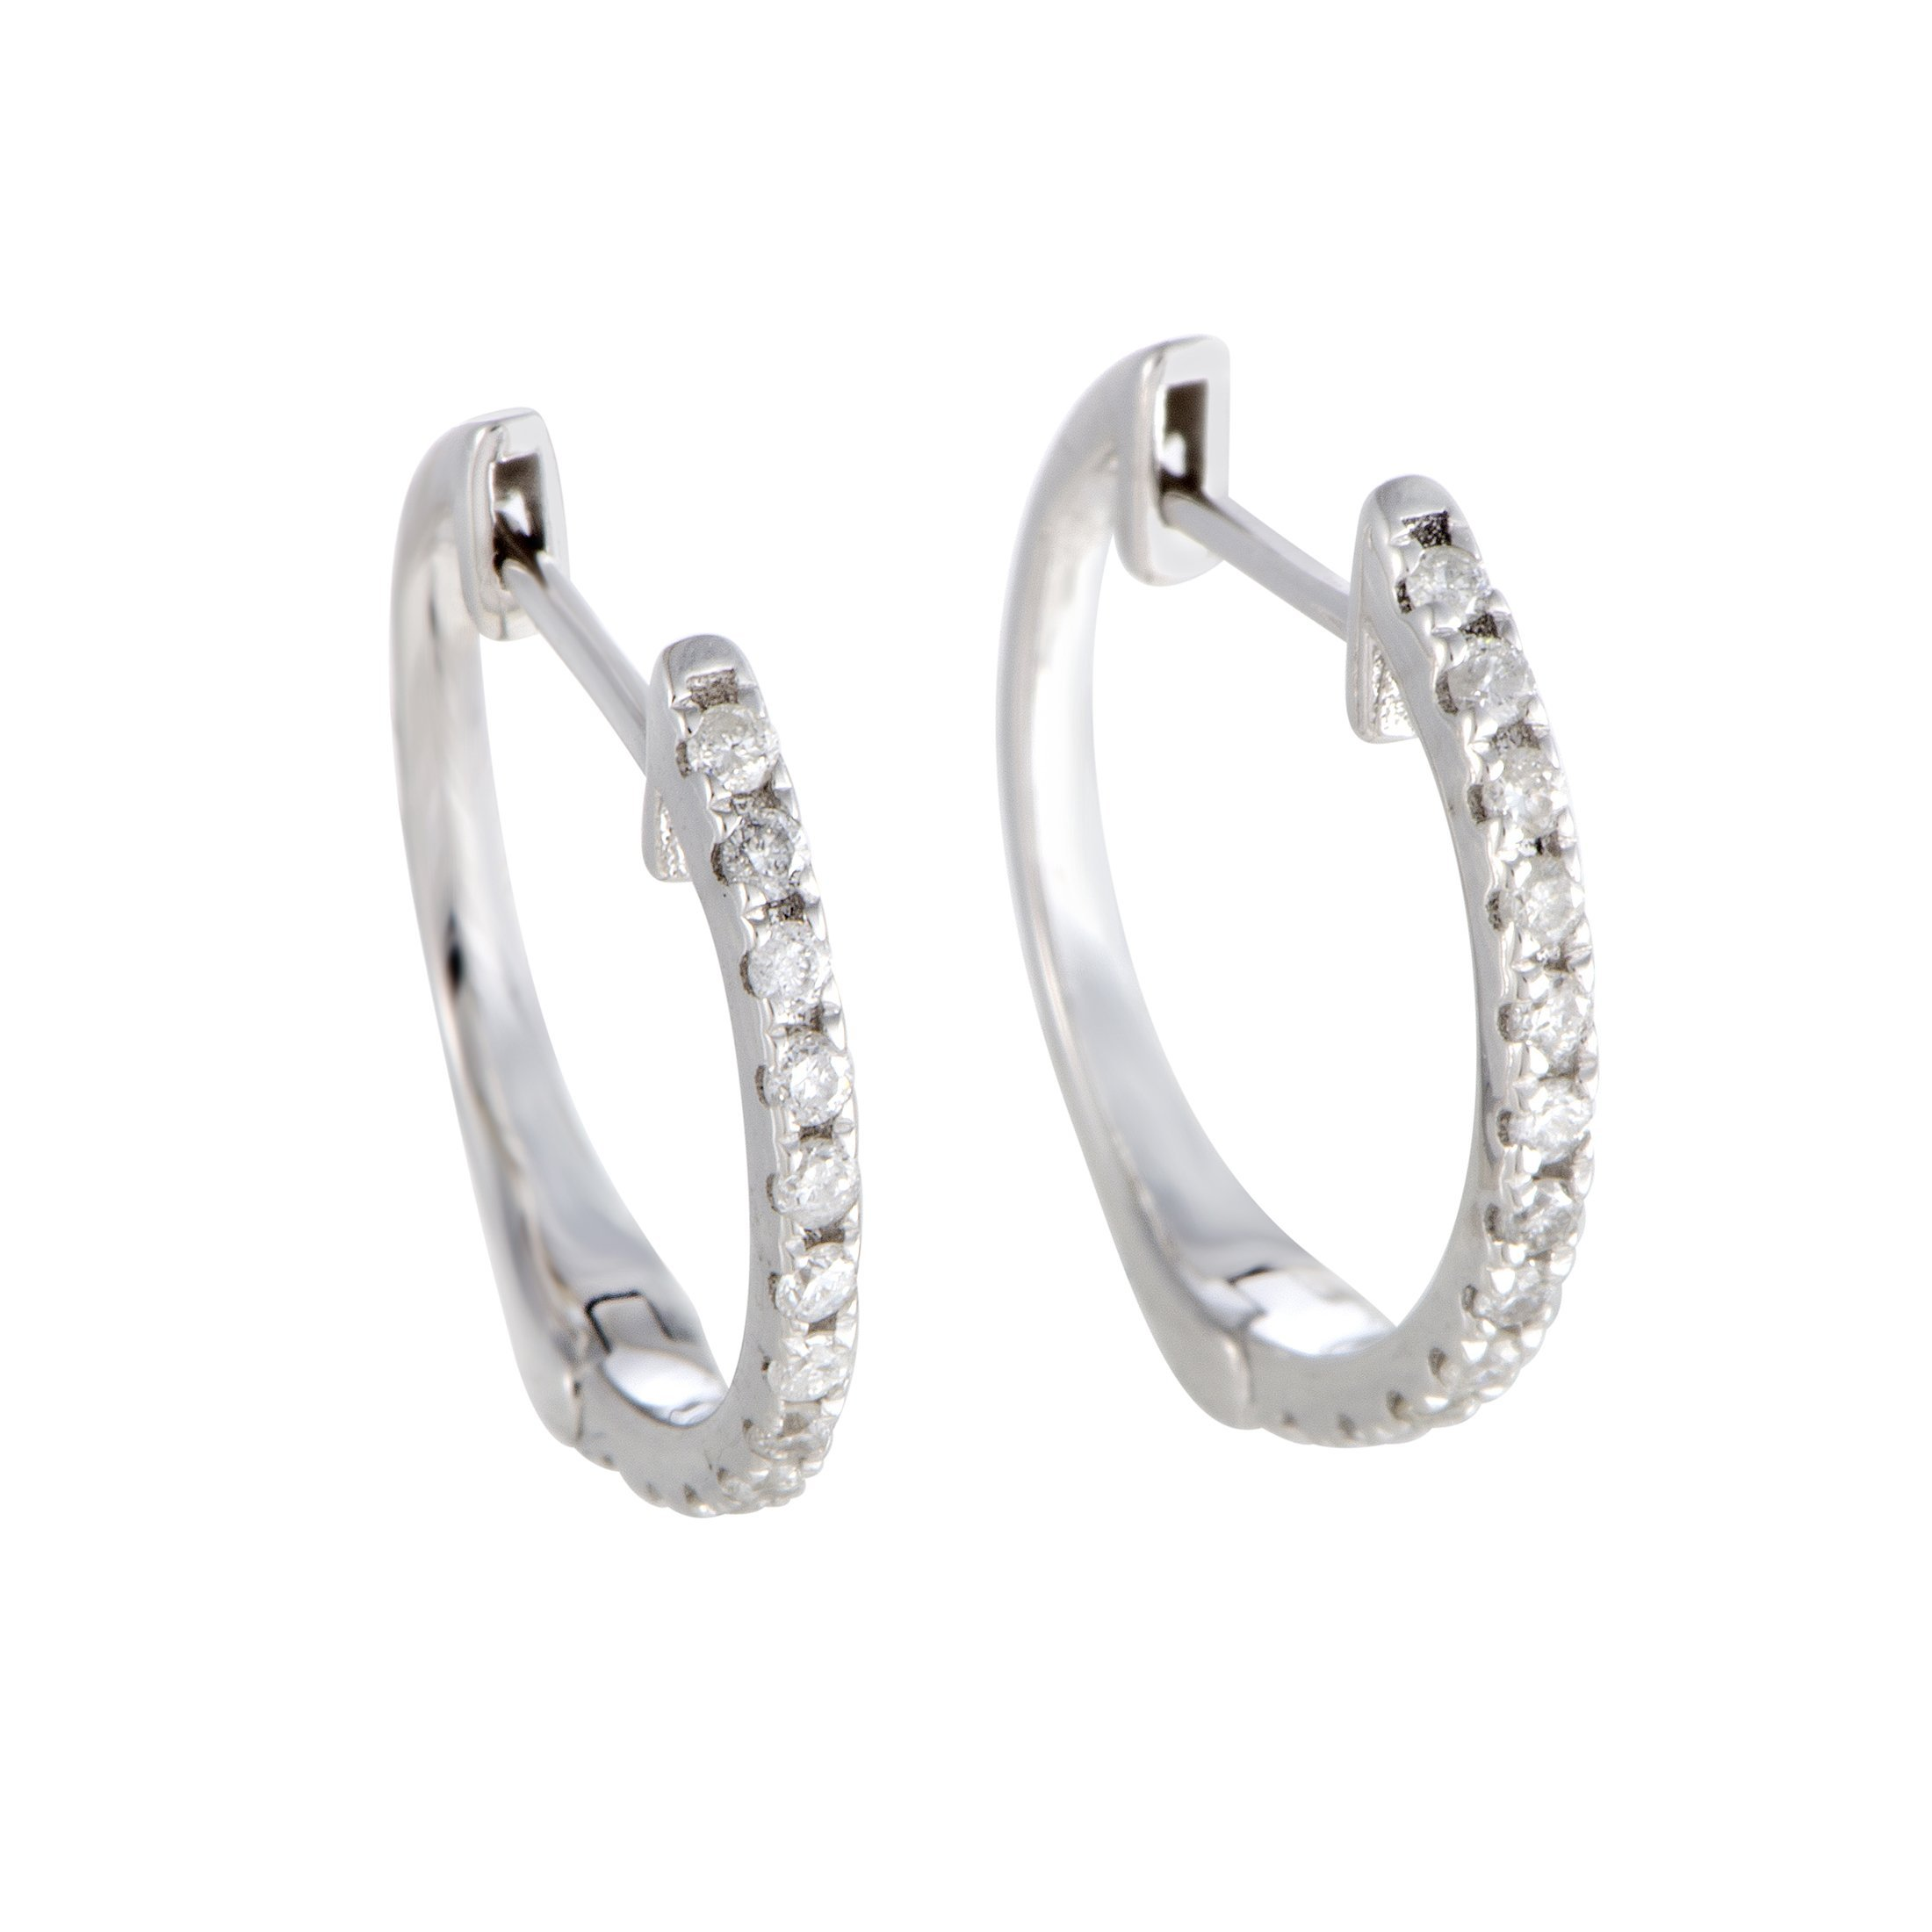 Sparkling 0.5'' Diamond Hoop Earrings in 10K White Gold; 0.20 Carats of Brilliant Diamonds (white-gold)